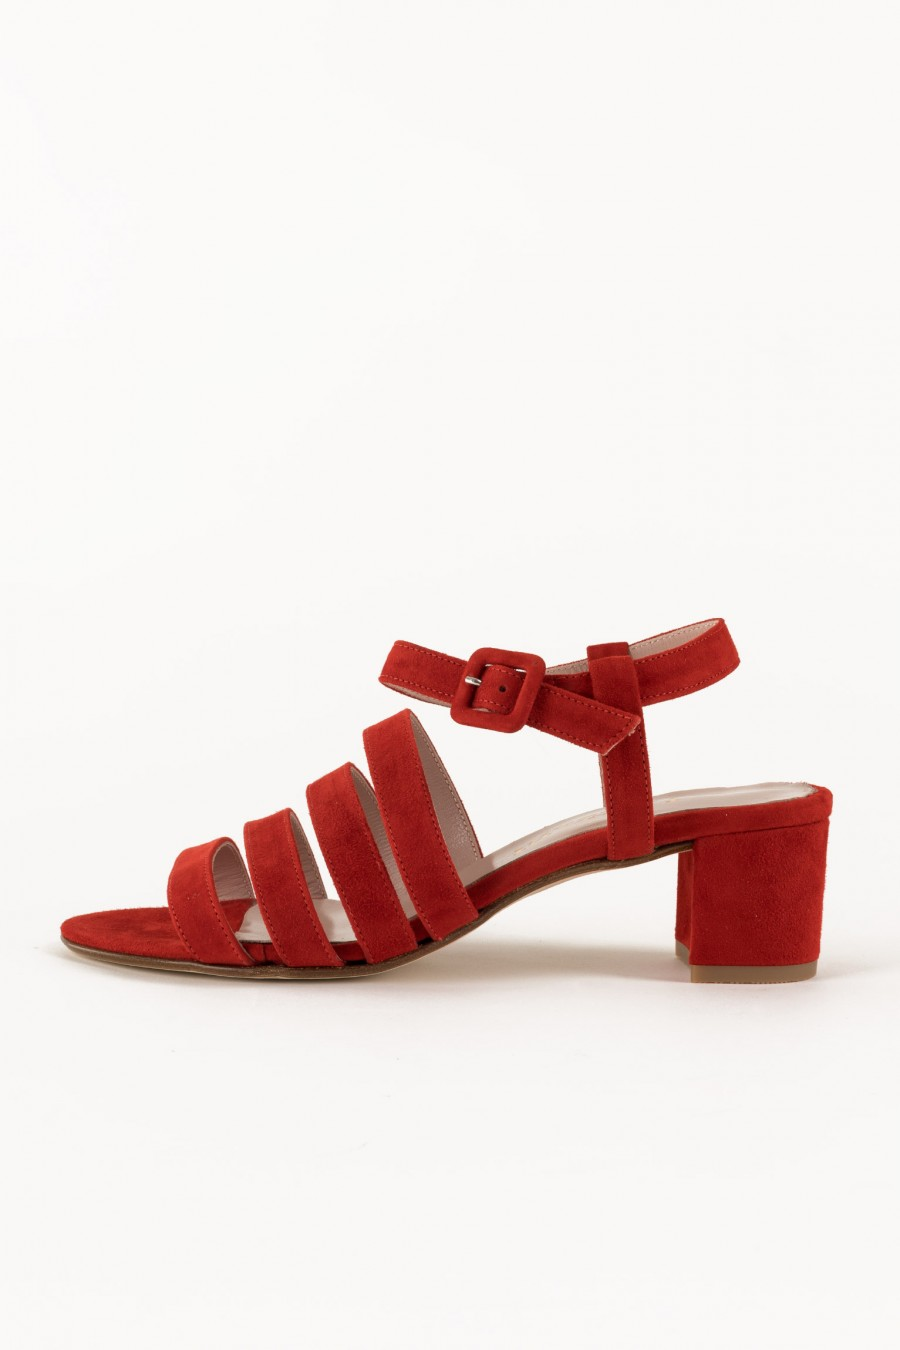 Red sandals with stripes